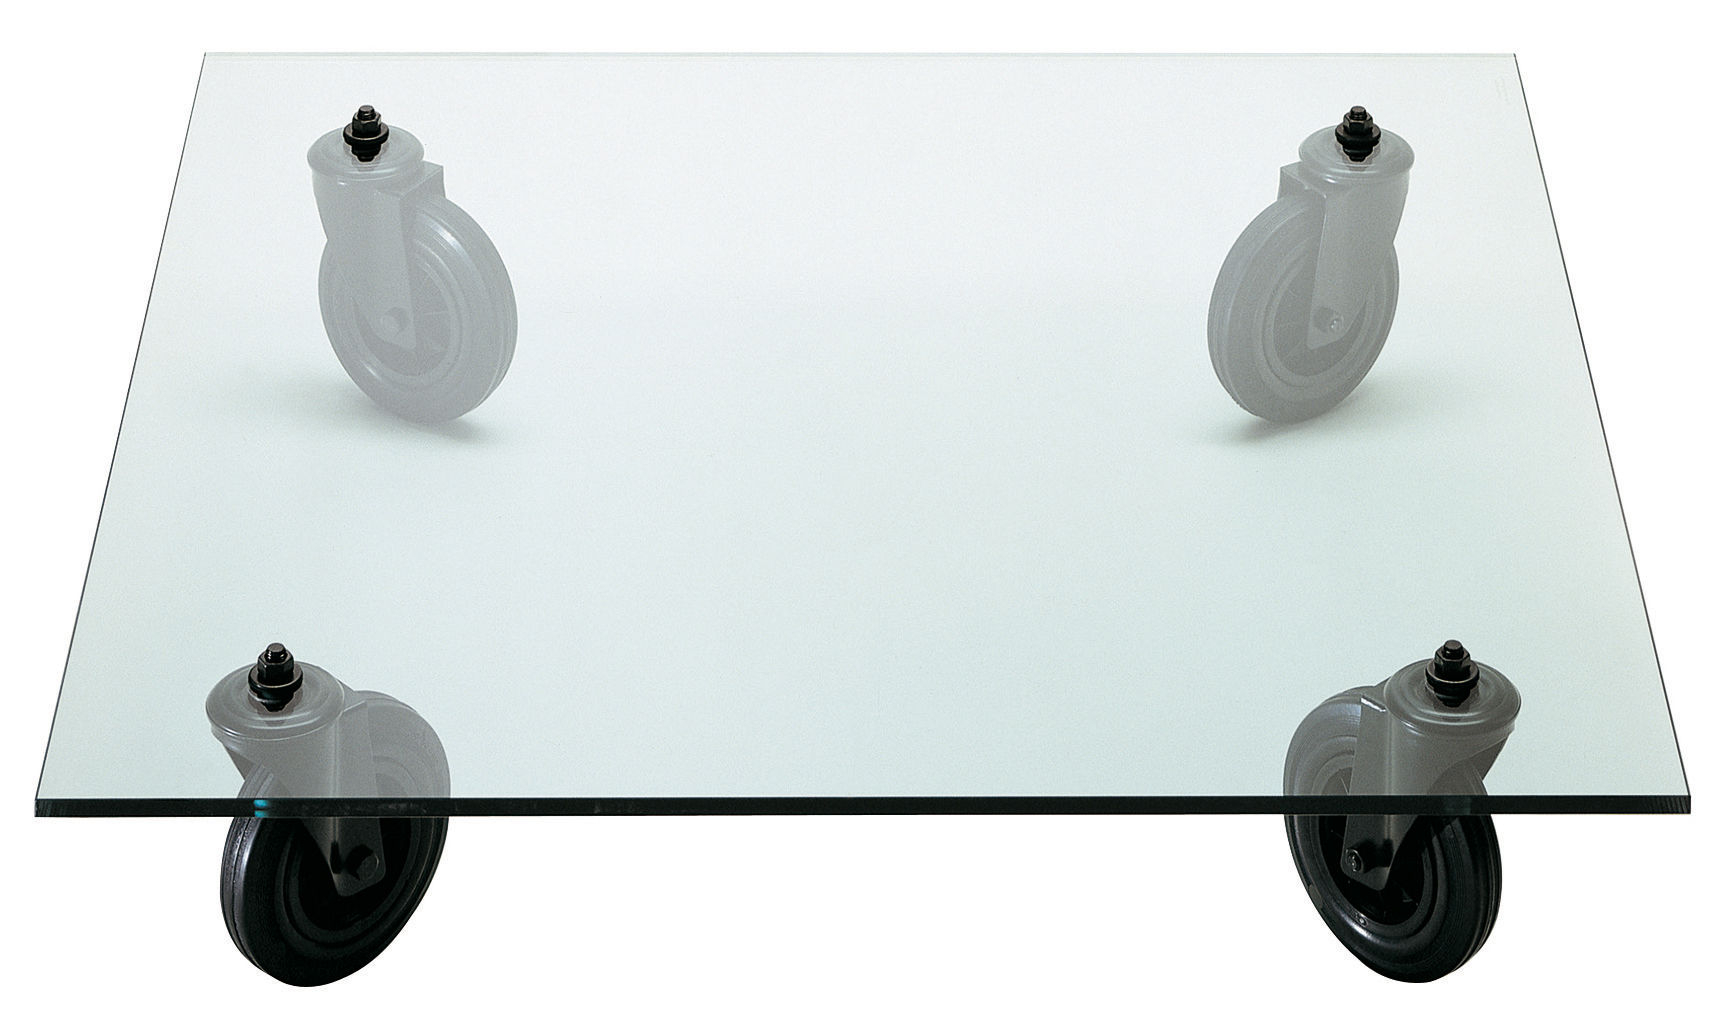 Furniture - Coffee Tables - Gae Aulenti Coffee table by Fontana Arte - 120 x 120 cm - Glass, Rubber, Varnished metal